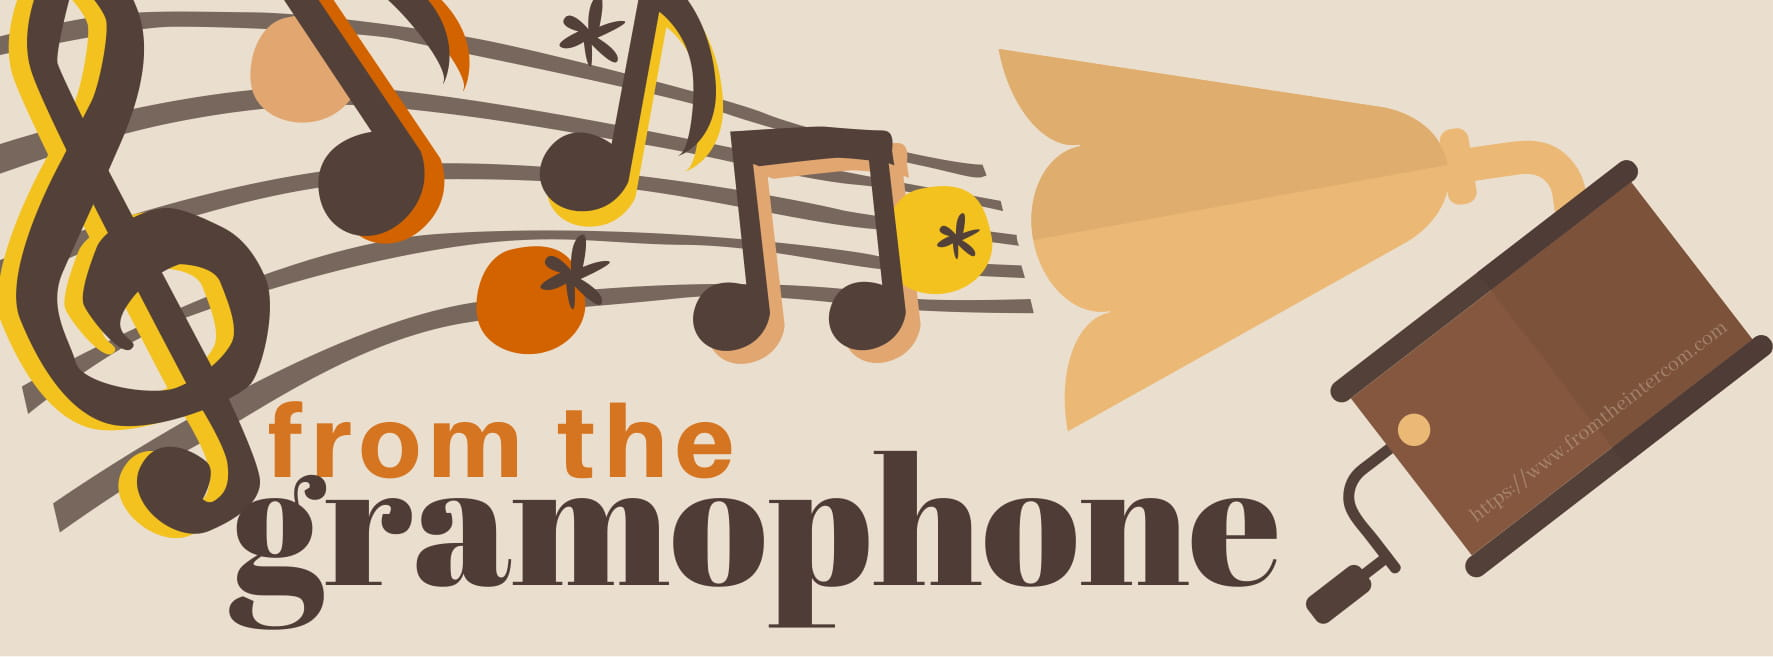 Announcing a New Column: From the Gramophone